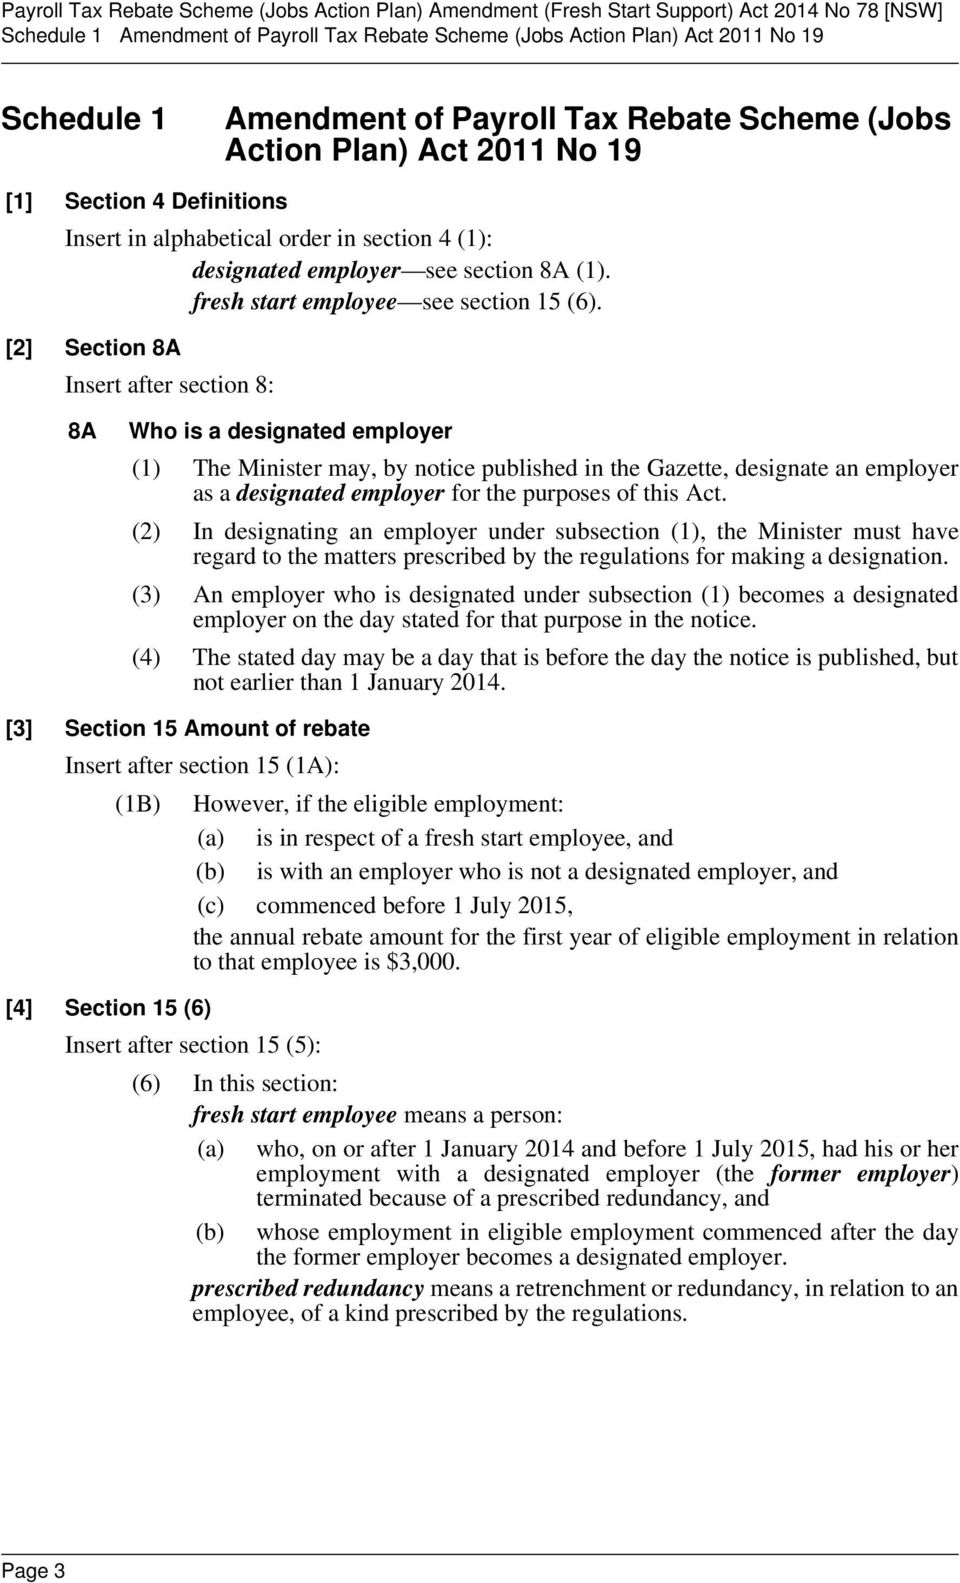 [2] Section 8A Insert after section 8: 8A Who is a designated employer (1) The Minister may, by notice published in the Gazette, designate an employer as a designated employer for the purposes of